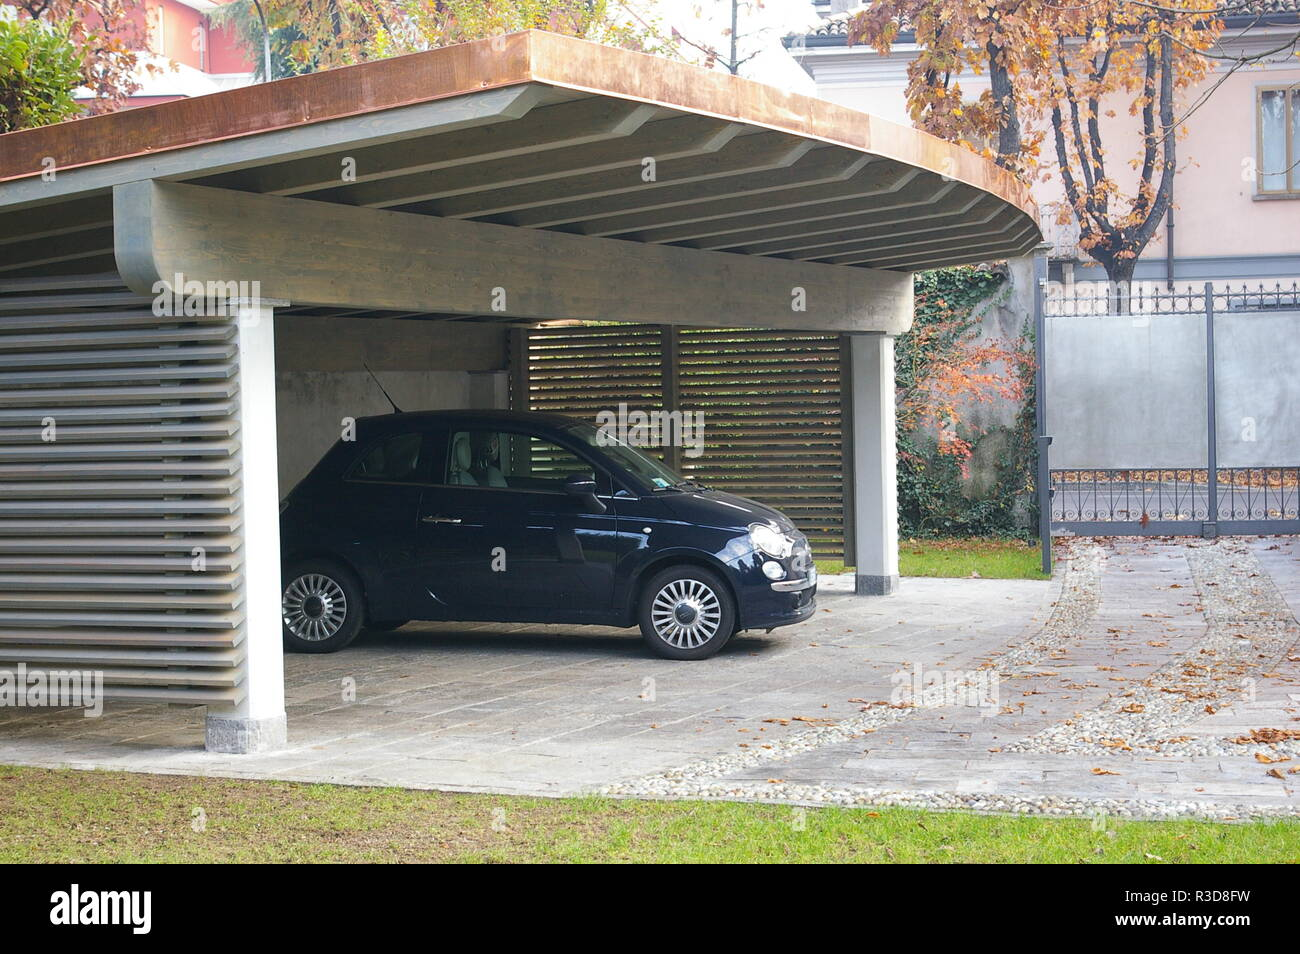 Karpot Luxury Carport In Curved Shape Stock Photo - Alamy